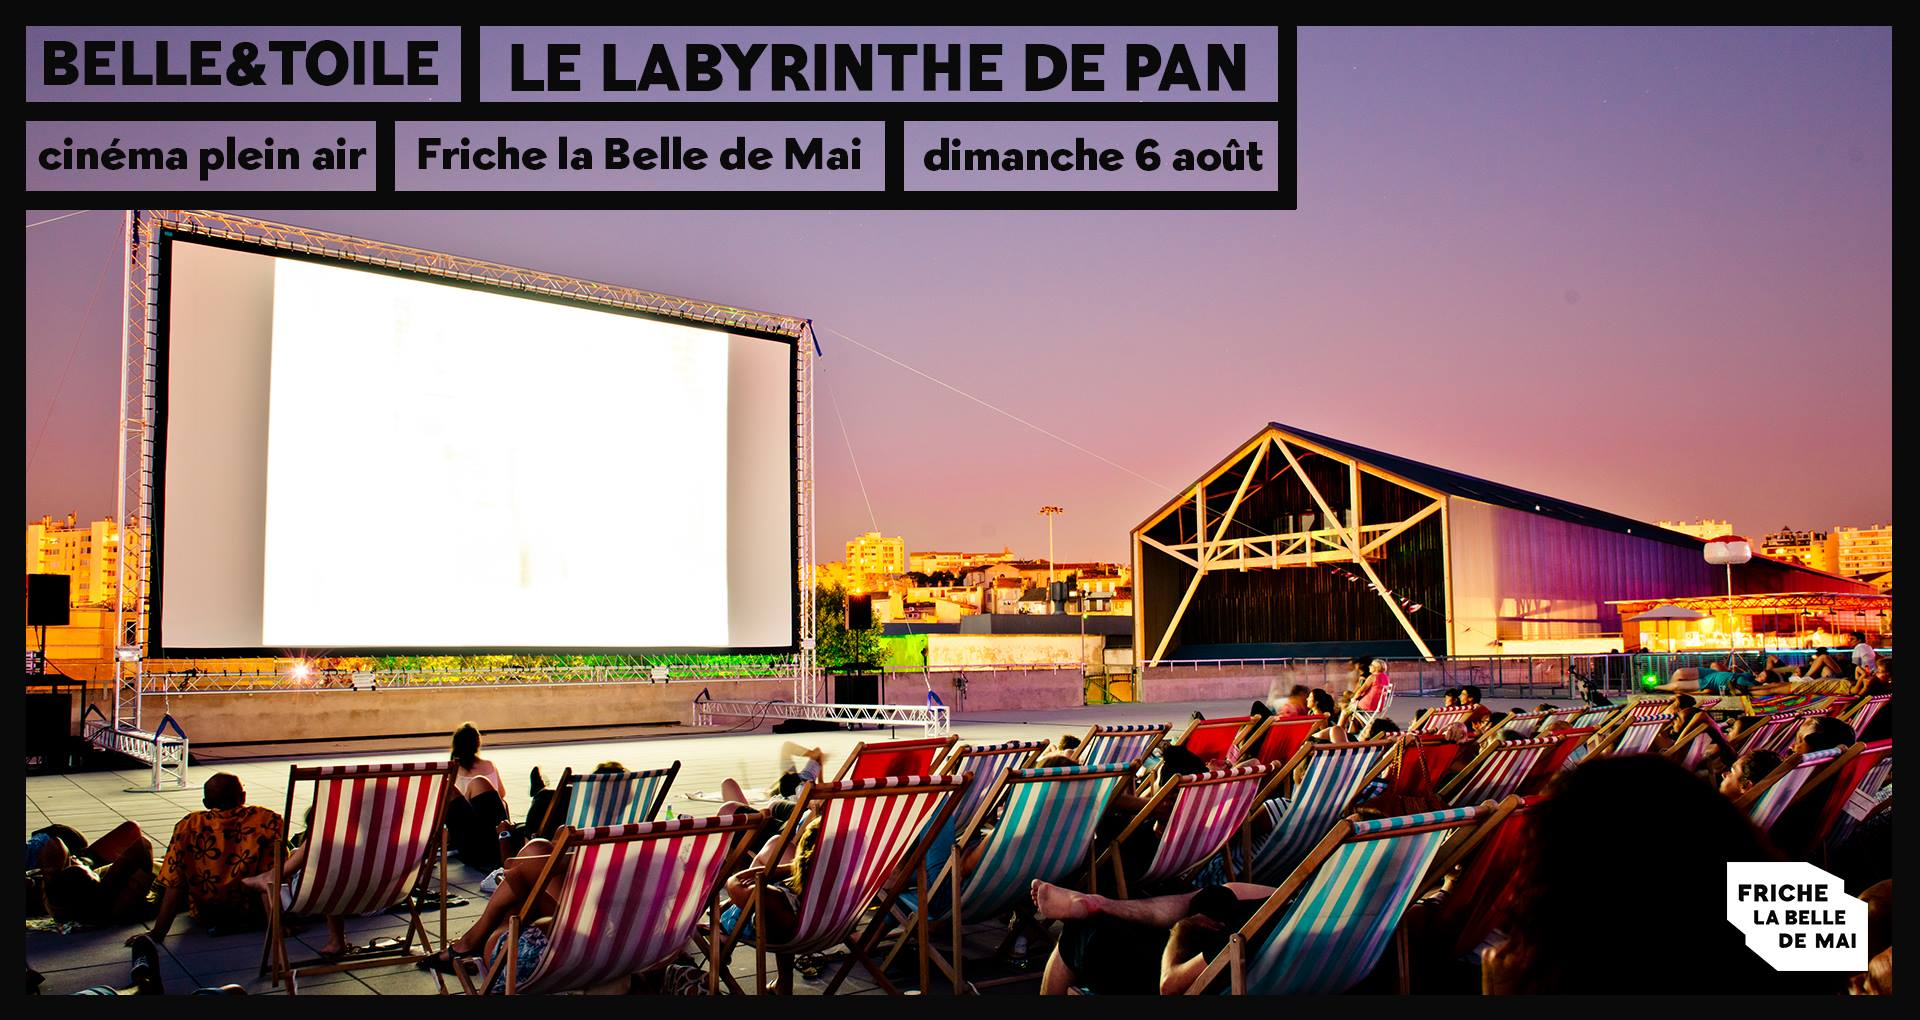 belle &toile cinema plein air friche belle de mai